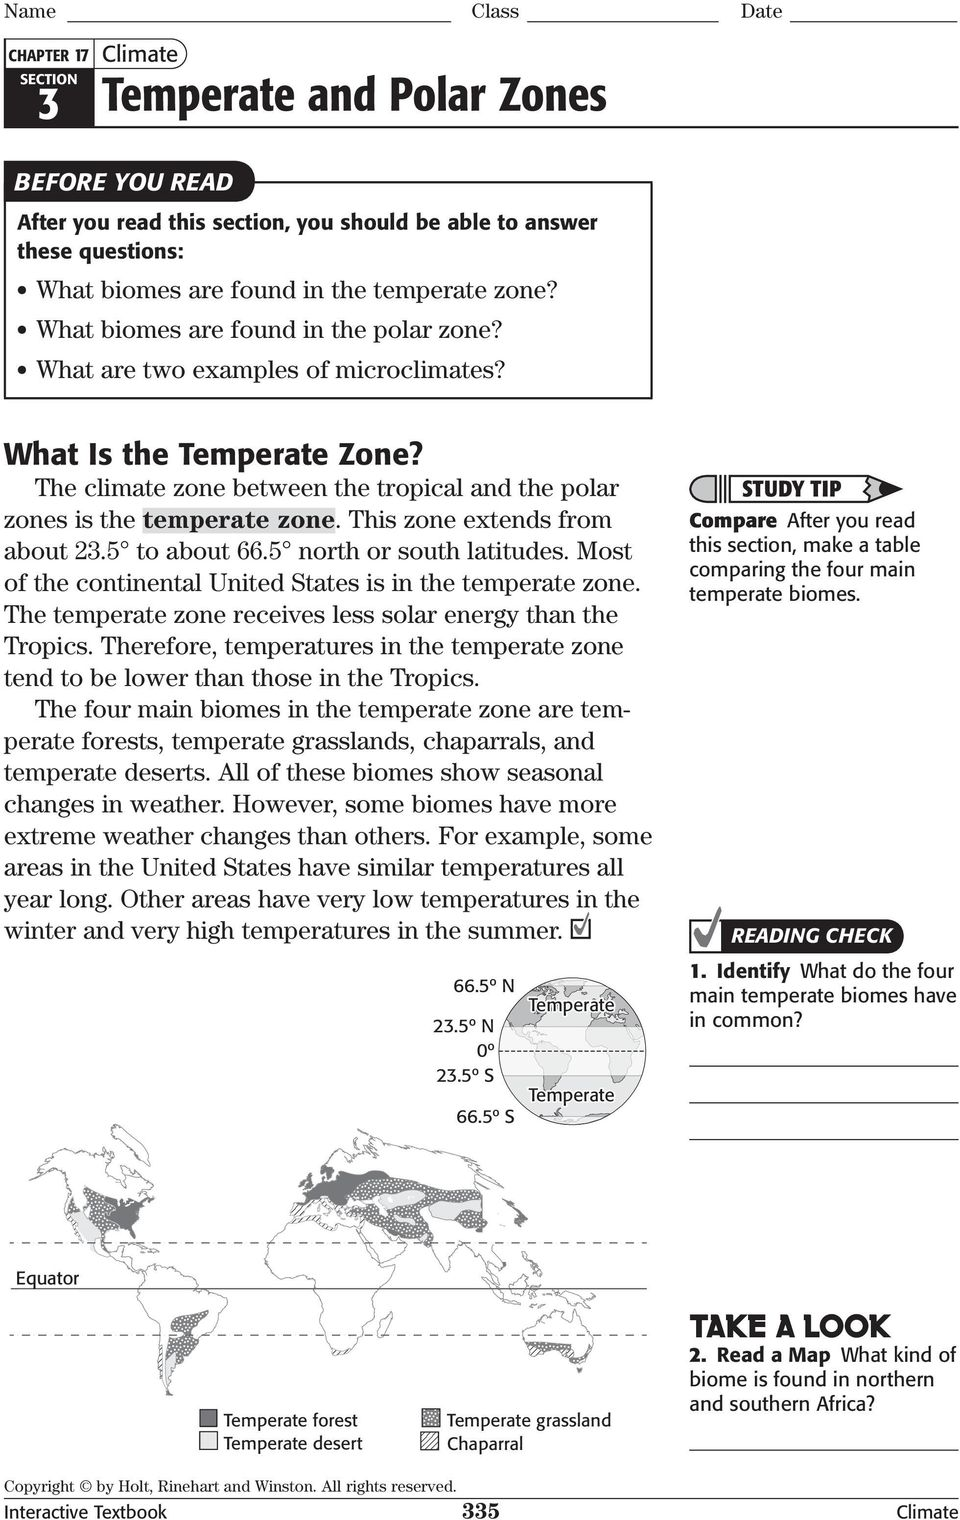 The climate zone between the tropical and the polar zones is the temperate zone. This zone extends from about 23.5 to about 66.5 north or south latitudes.